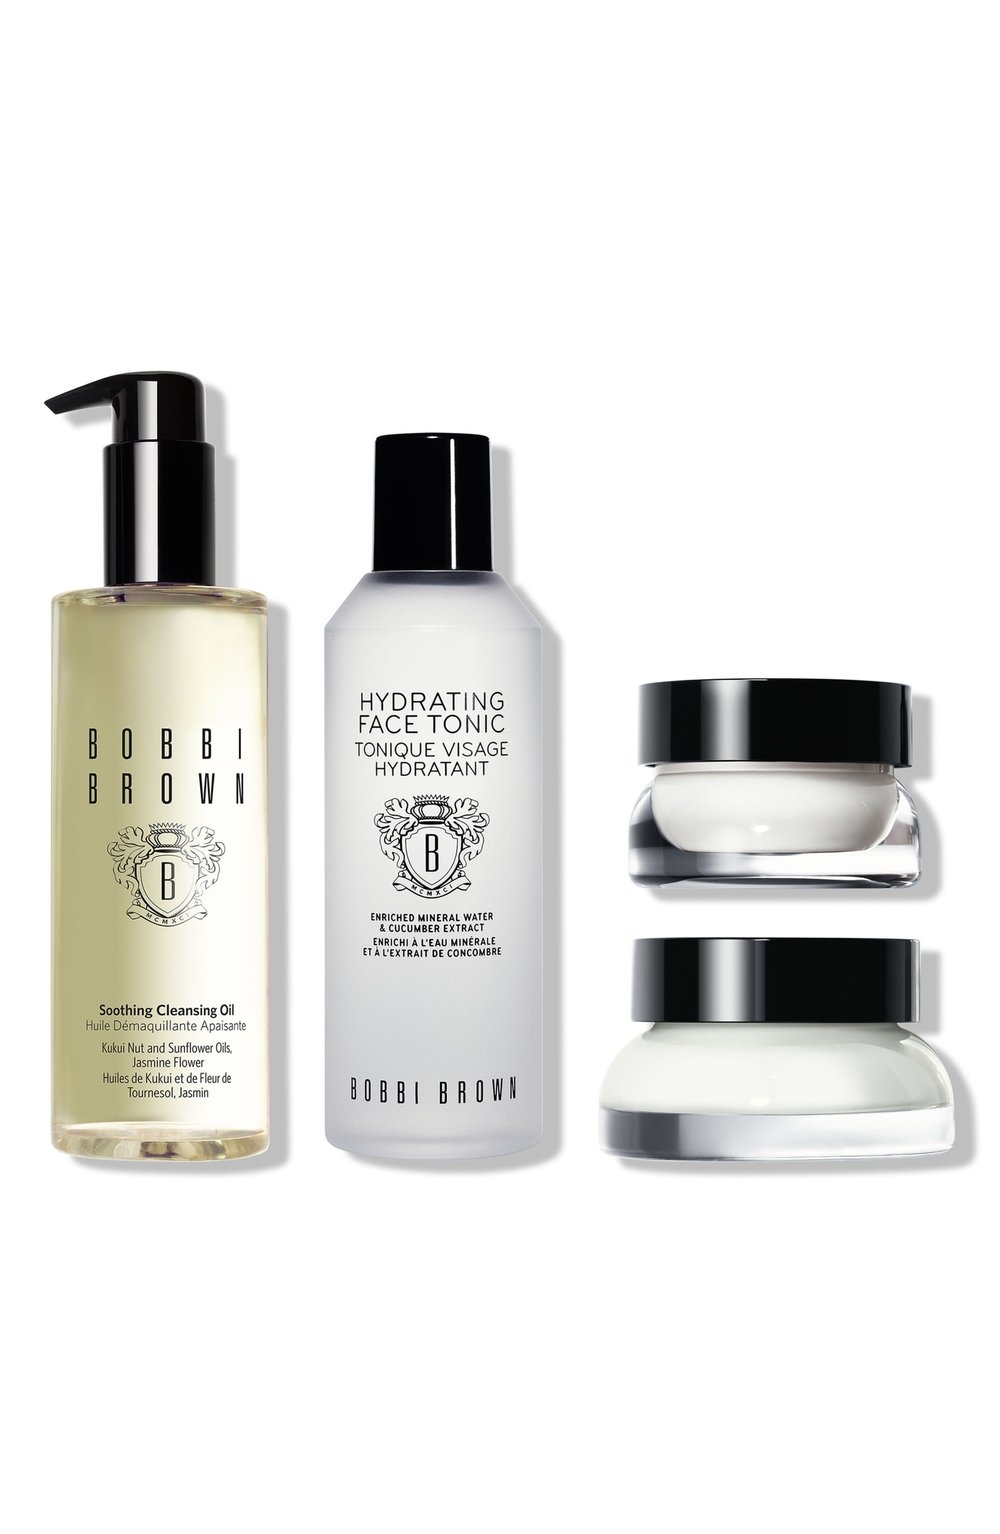 - This Bobbi Brown set is another set of ridiculous value. It's half-off! I absolutely love the Soothing Cleansing Oil and use it every single day to remove my makeup. (Read my review here.) I haven't tried any of the other products, but I really love Bobbi Brown skincare so I trust they're amazing.